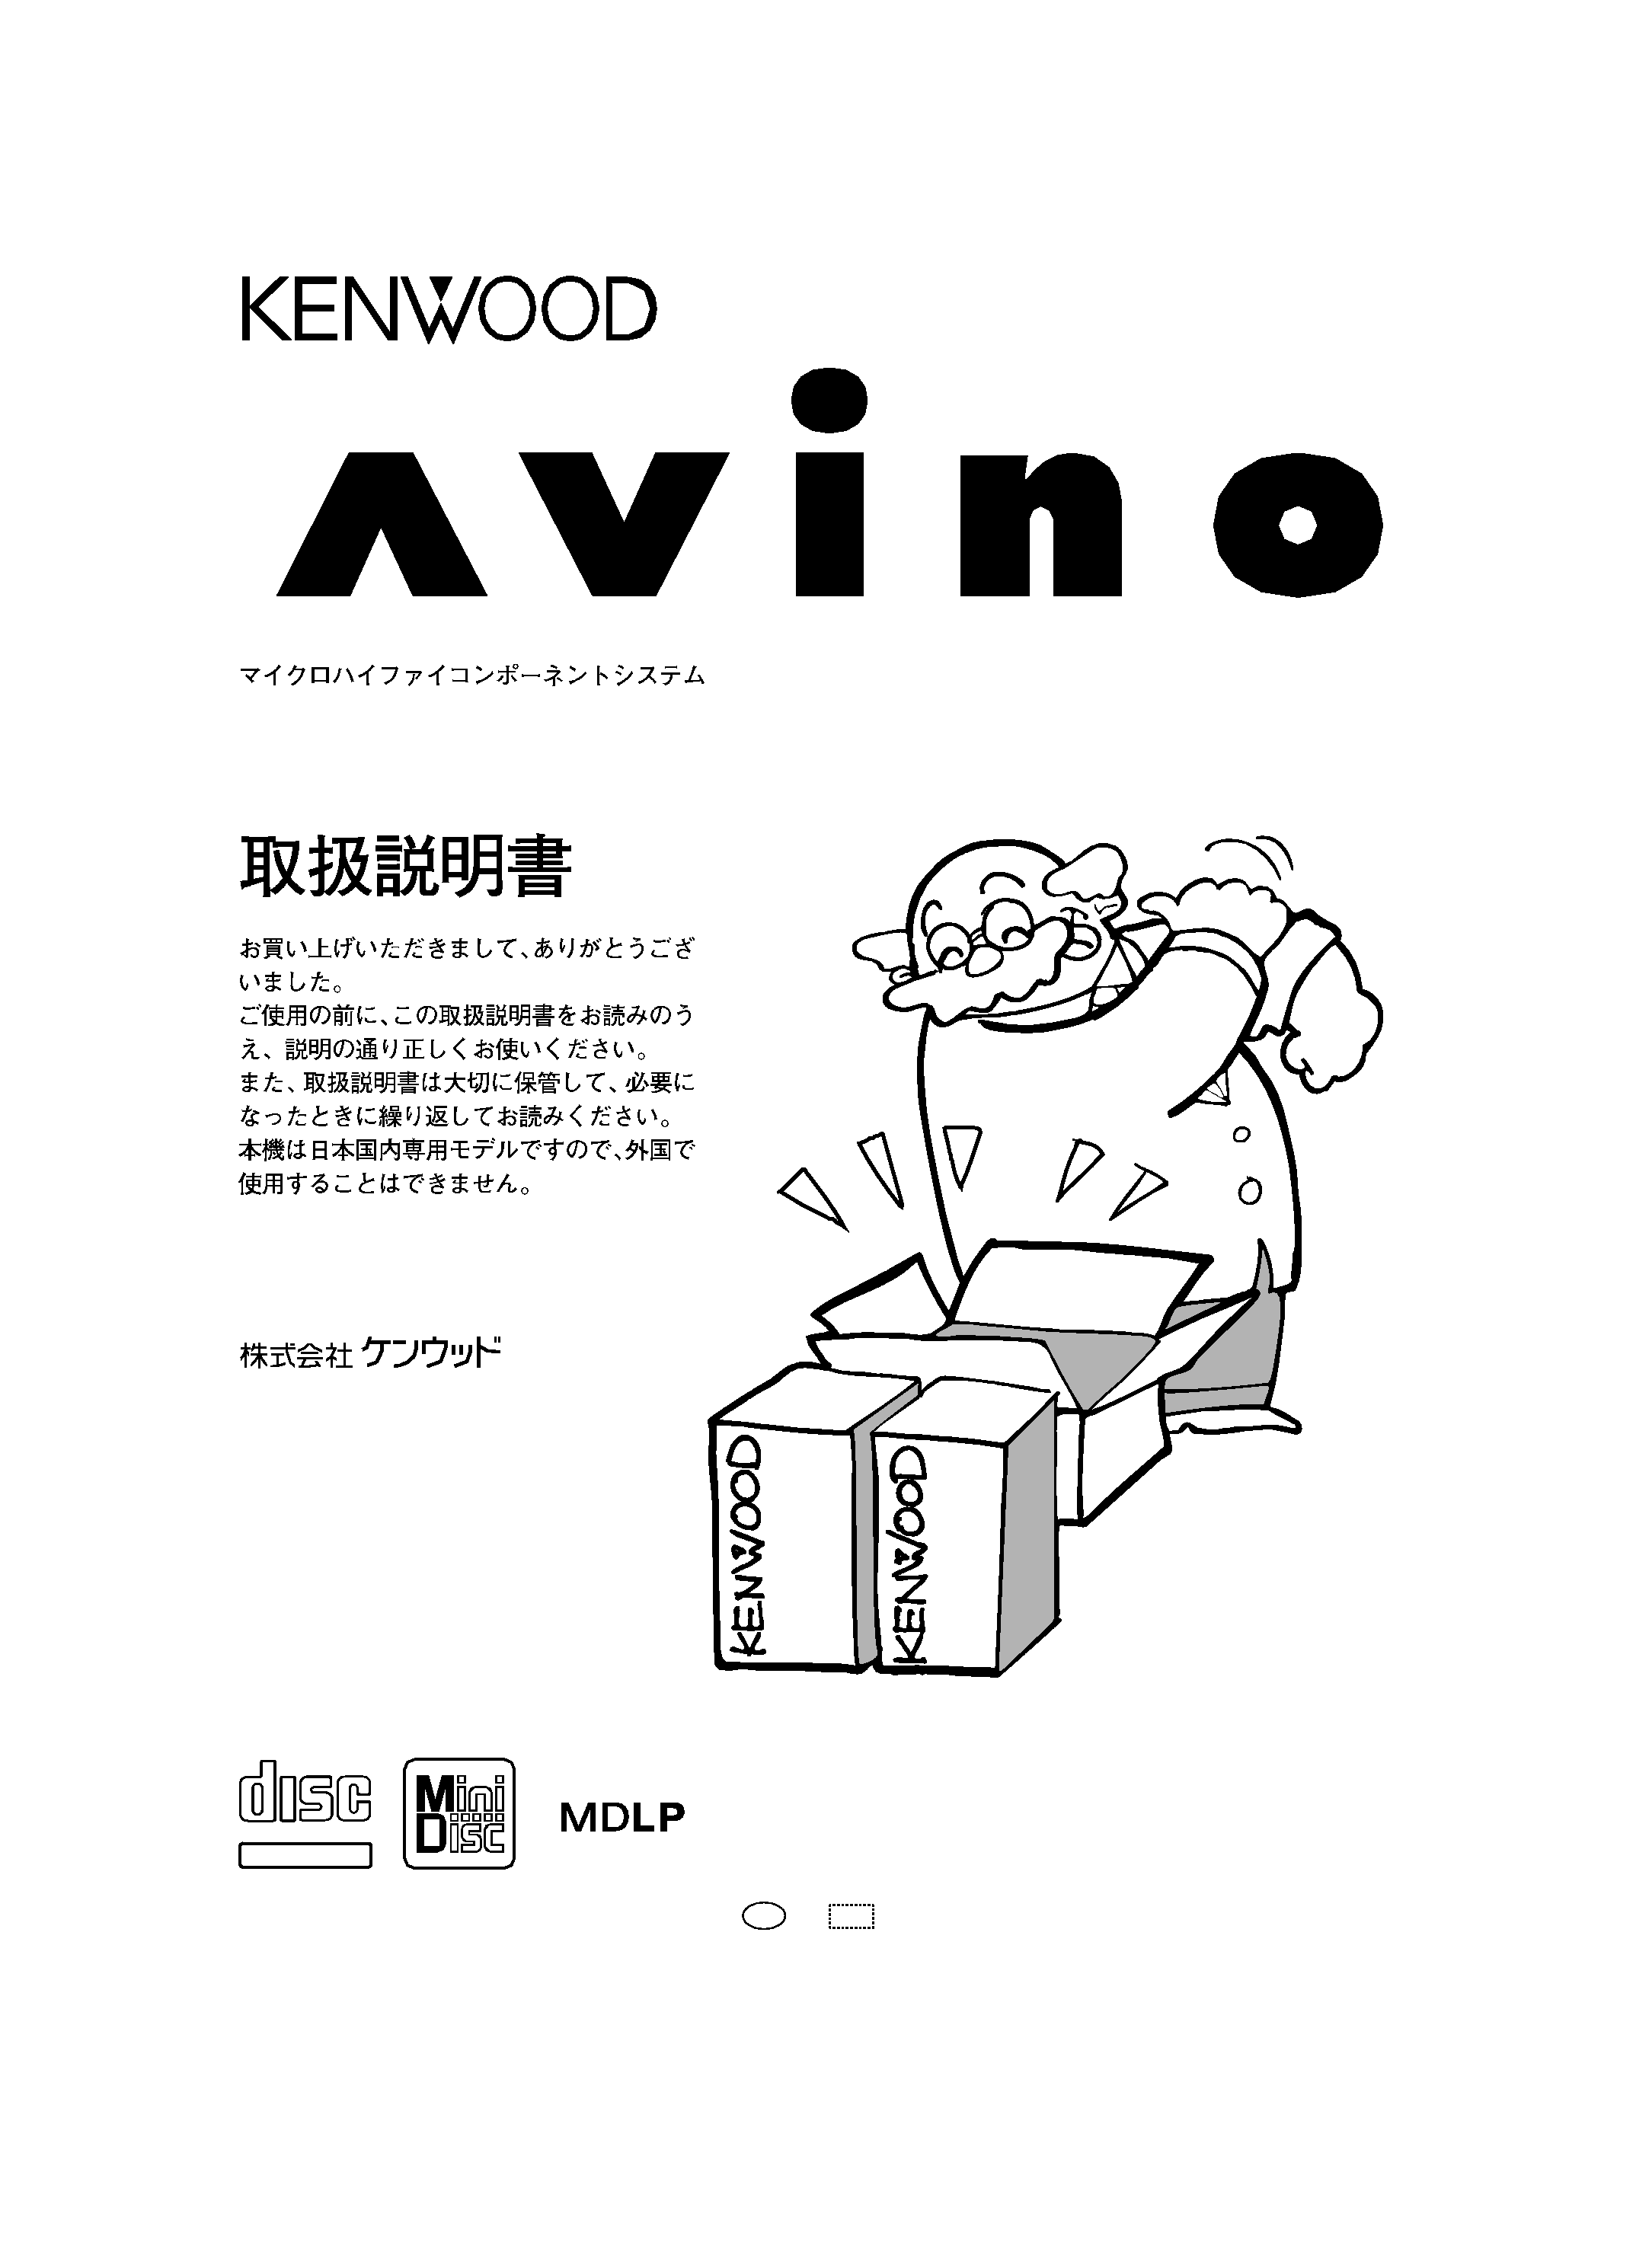 Kenwood ma 100 manual